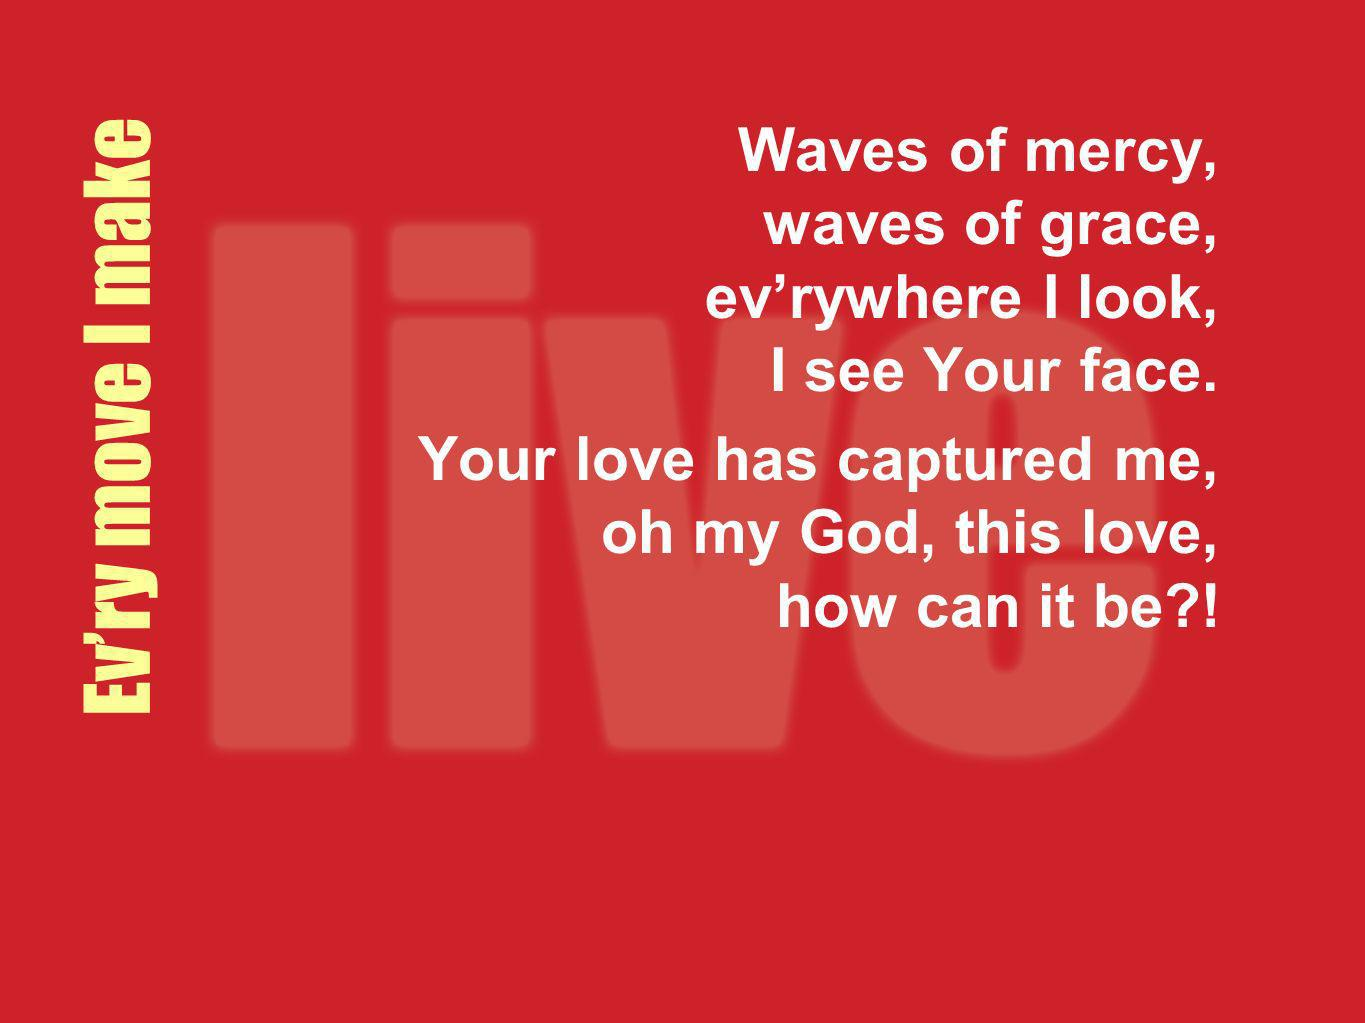 Waves of mercy, waves of grace, ev'rywhere I look, I see Your face.